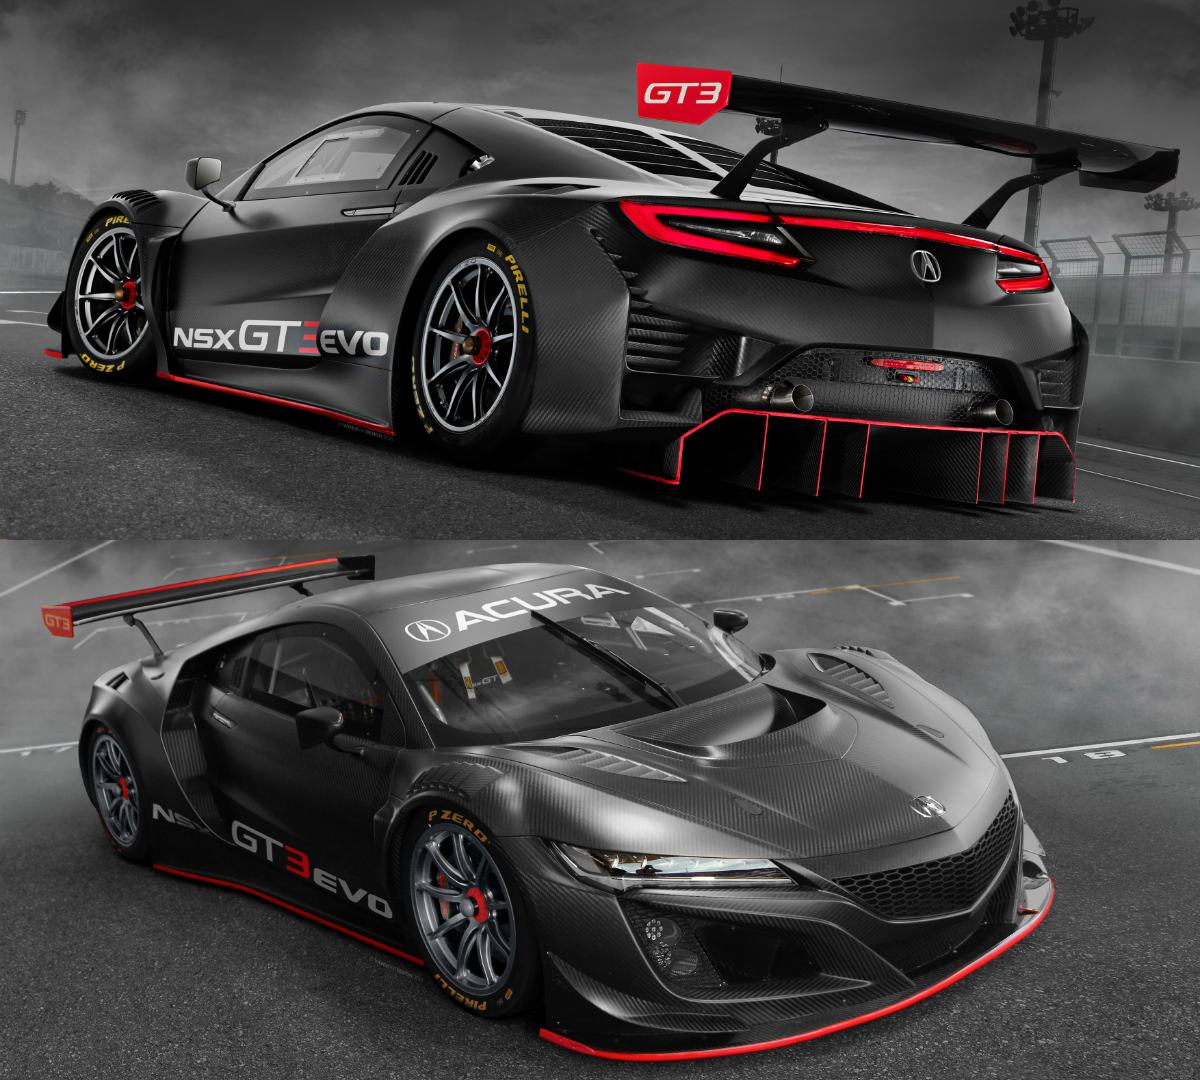 NSX GT3 will receive series of upgrades which include improved bodywork and mechanical enhancements, all available as retrofit improvements to benefit customer teams across global motorsport championships.